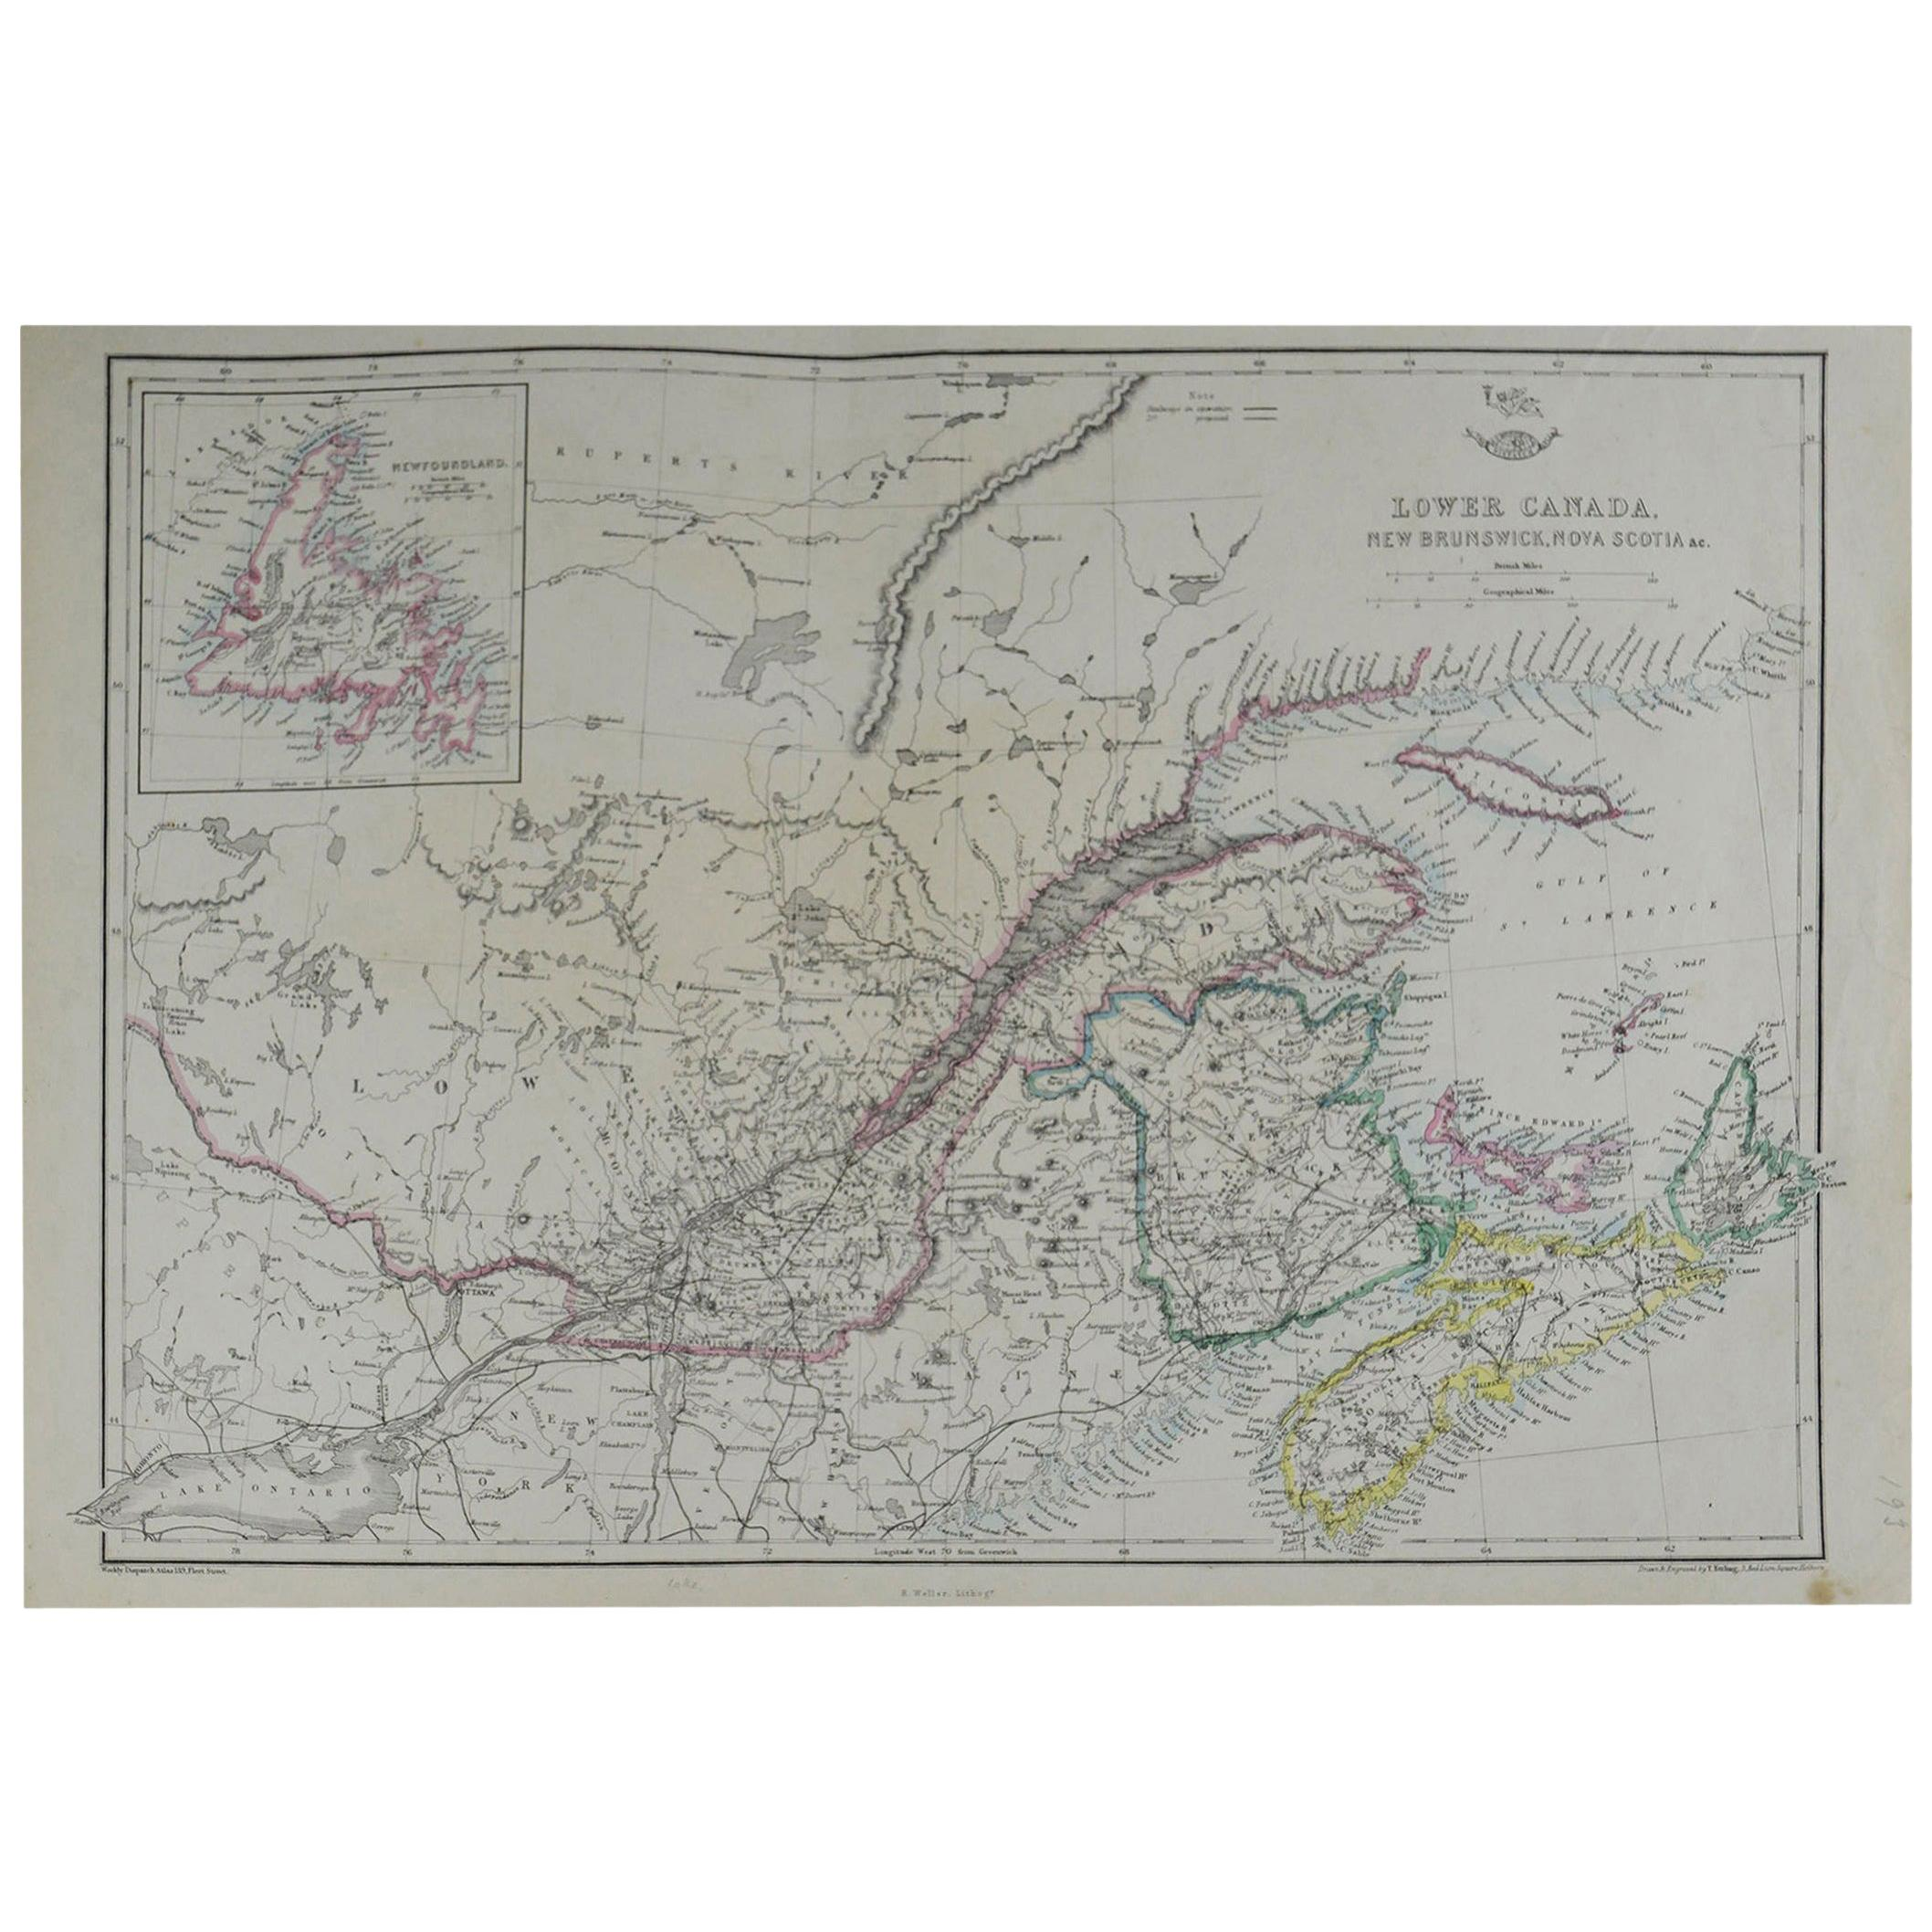 Original Antique Map of Canada by T. Ettling, 1861